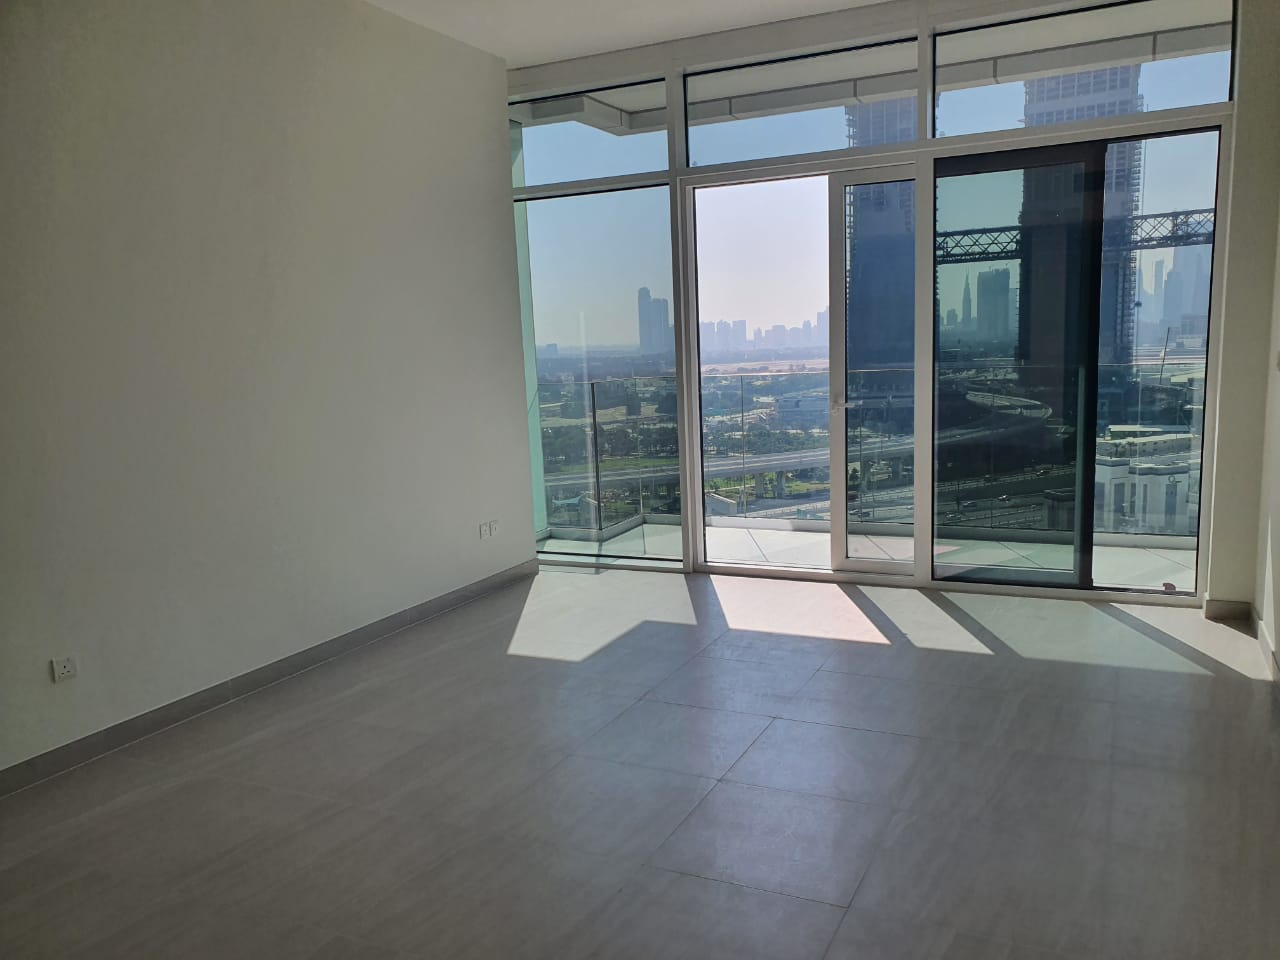 ELEGANT 1 BDR I READY FOR VIEWING AND LEASING